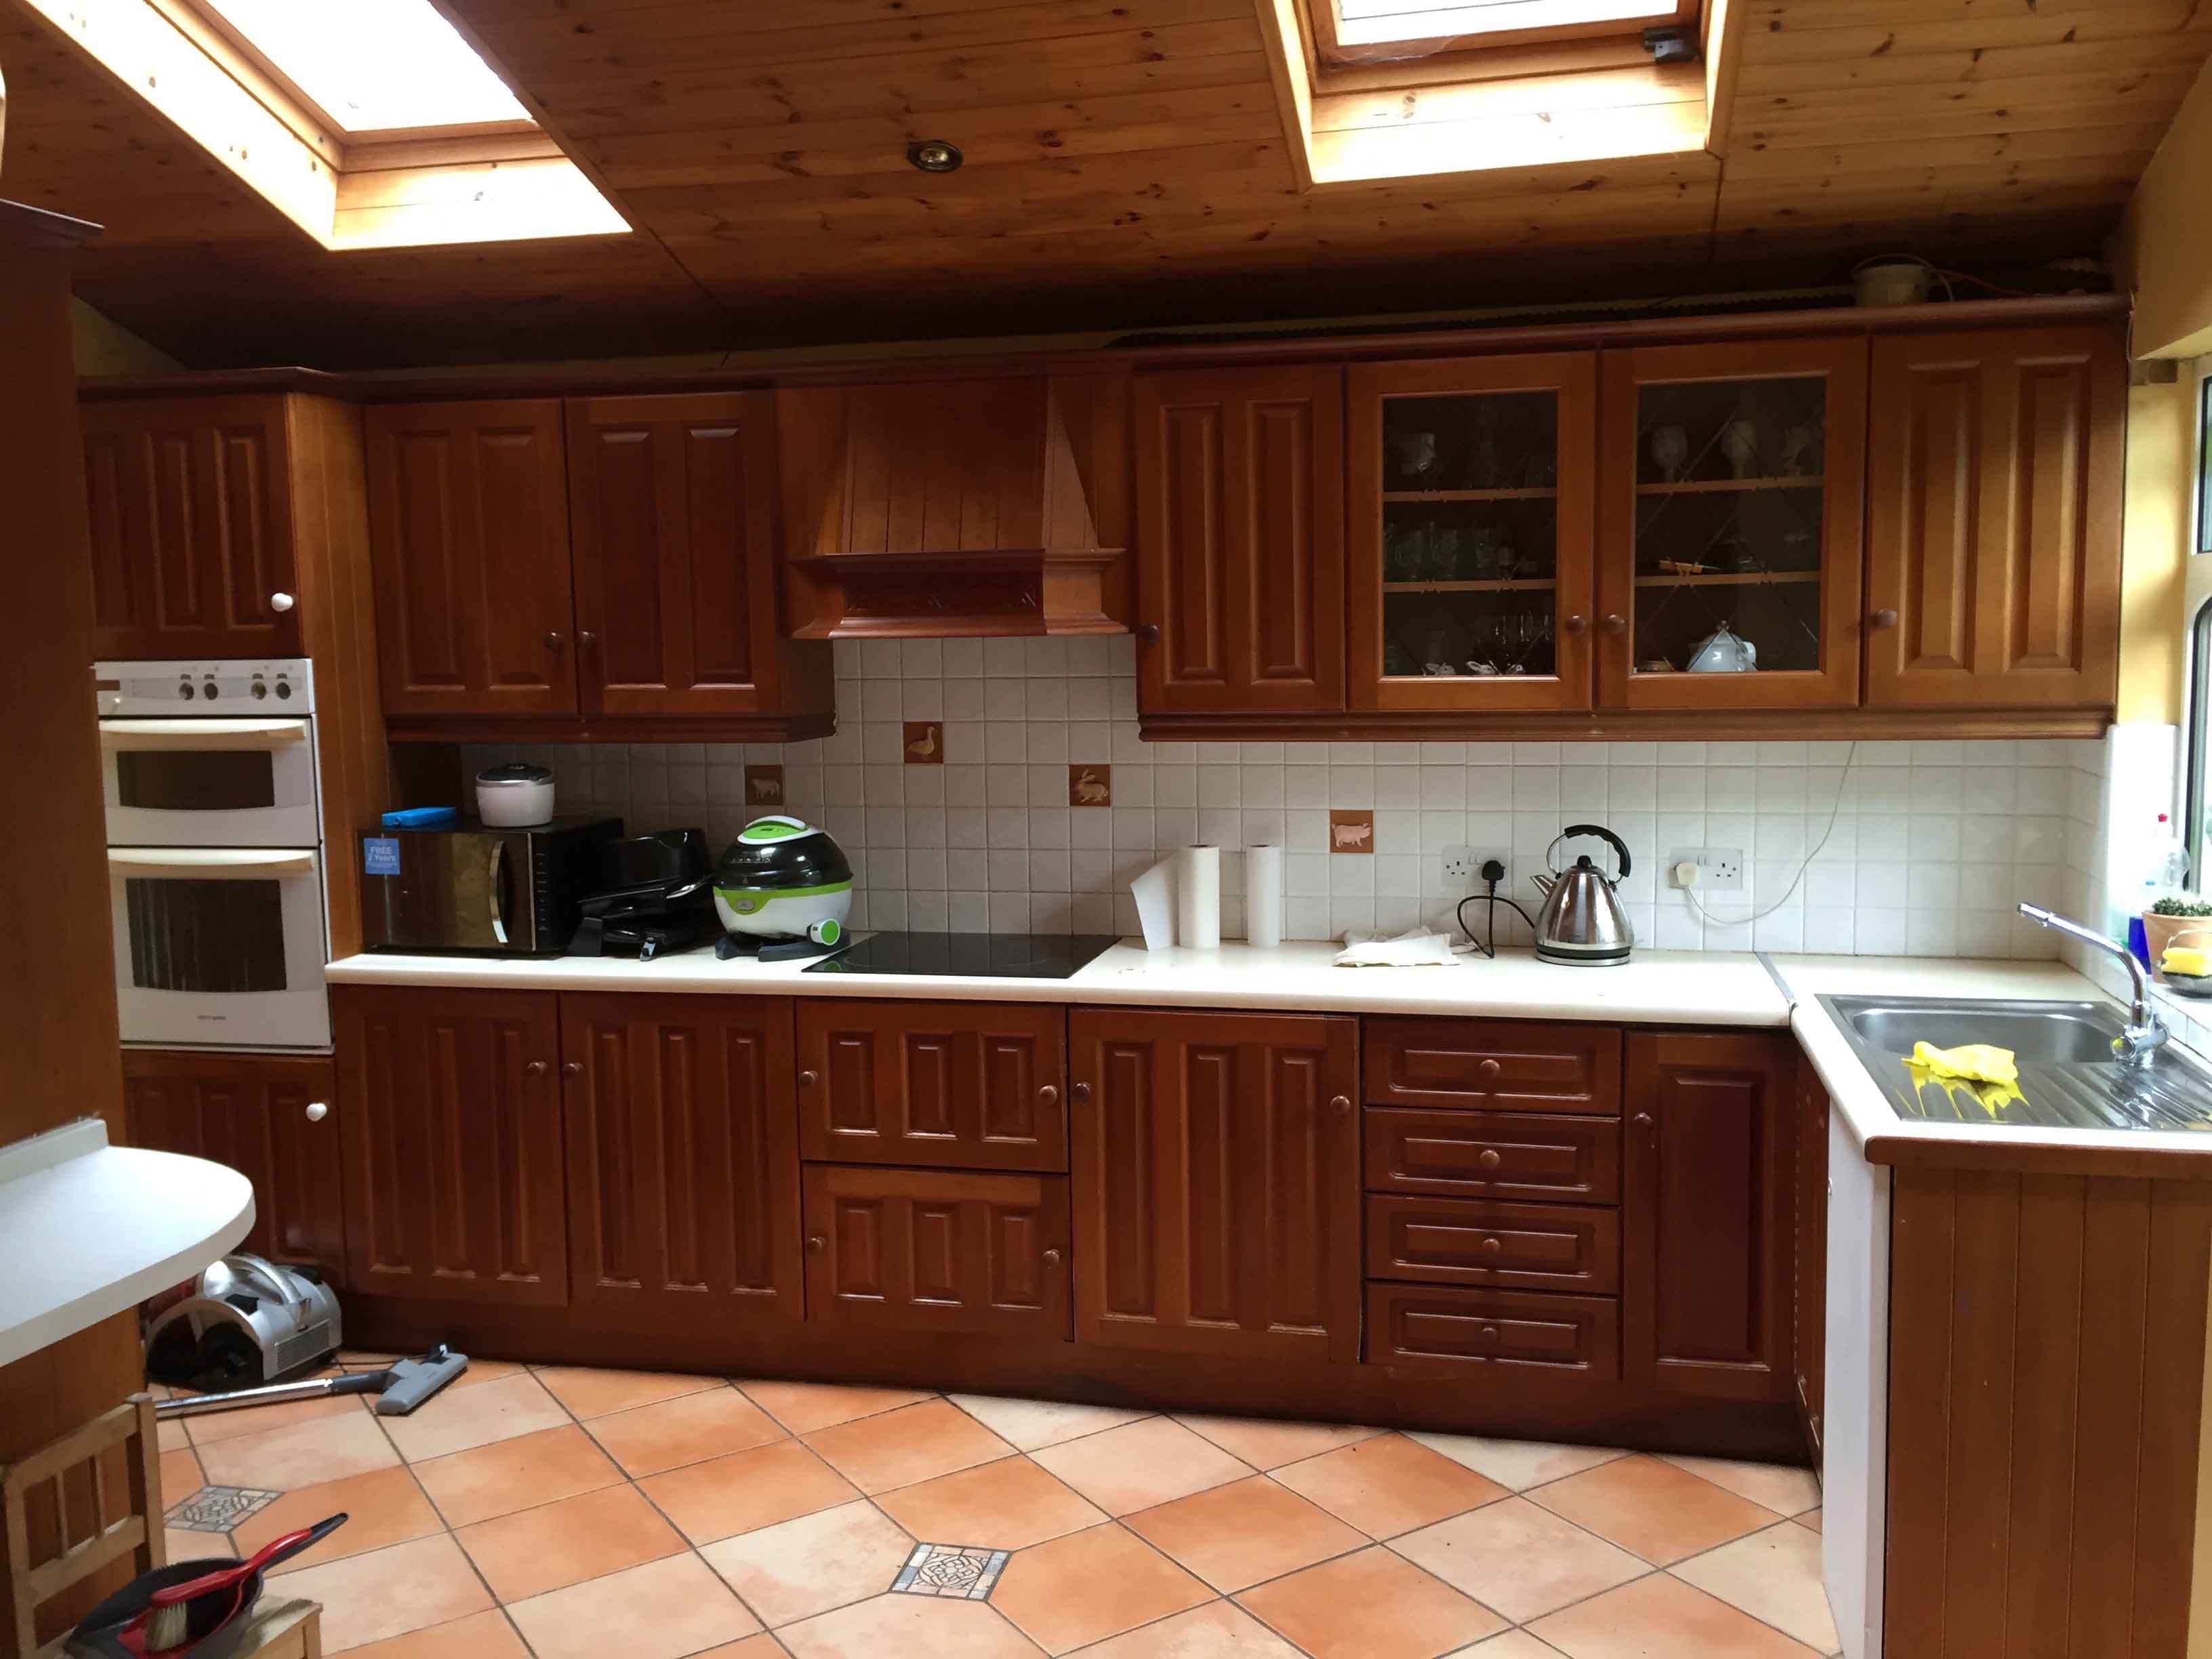 How To Hand Paint Wooden Kitchen Cupboards Impressions Ie Painting And Decorating In South Dublin